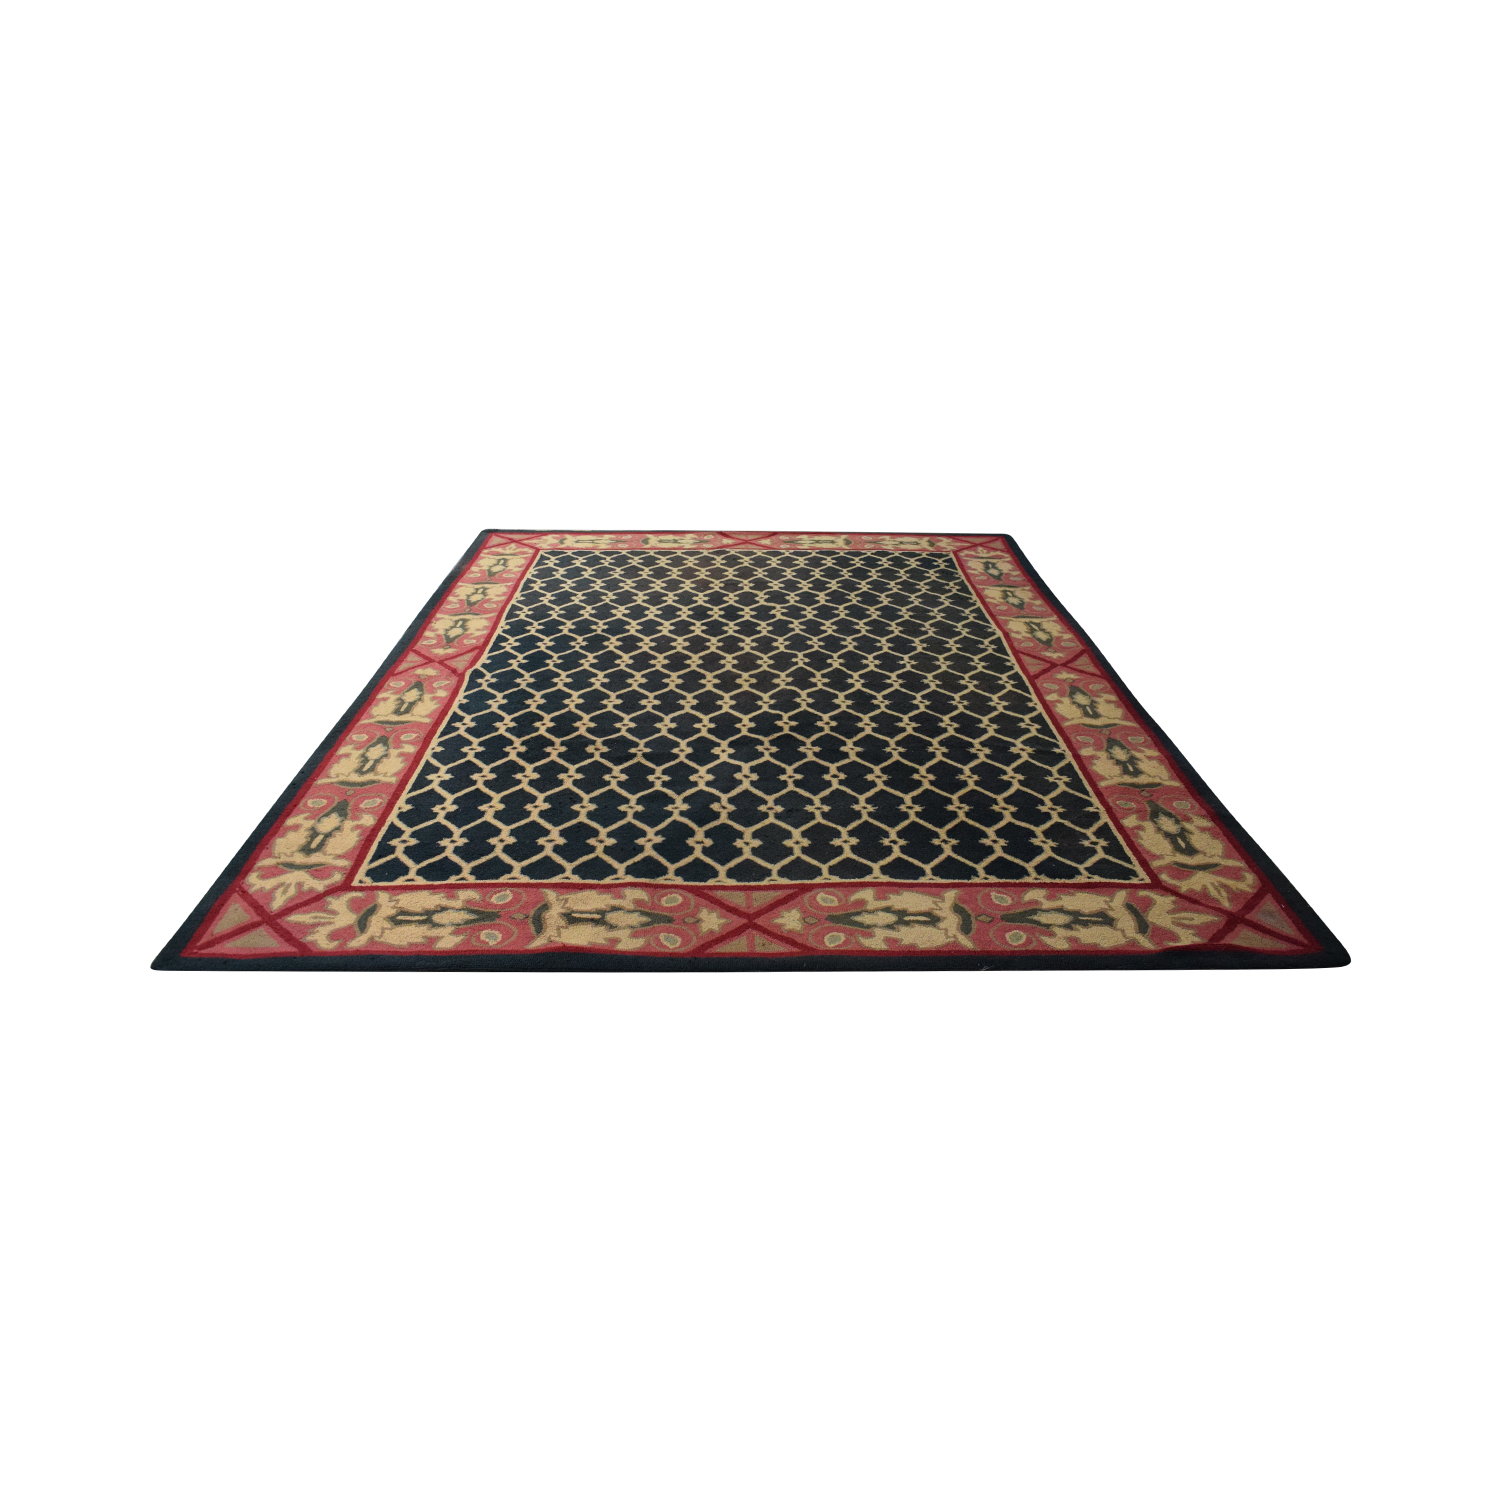 buy ABC Carpet & Home ABC Carpet & Home Windsor Wool Rug online